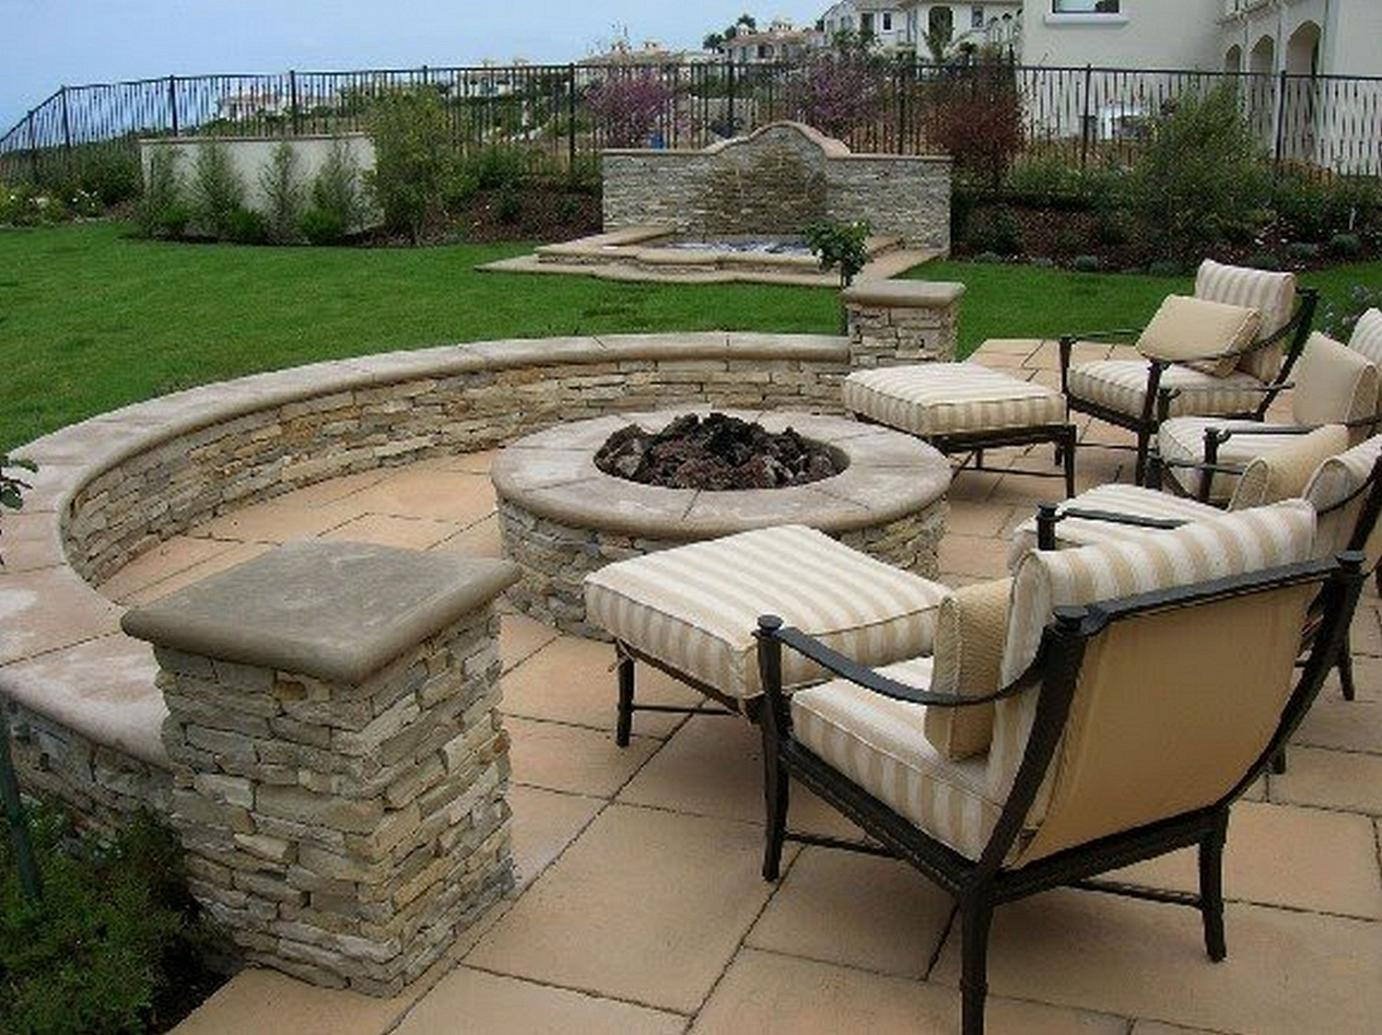 backyard patio ideas backyard paver patios paver design ideas - Paver Patio Design Ideas